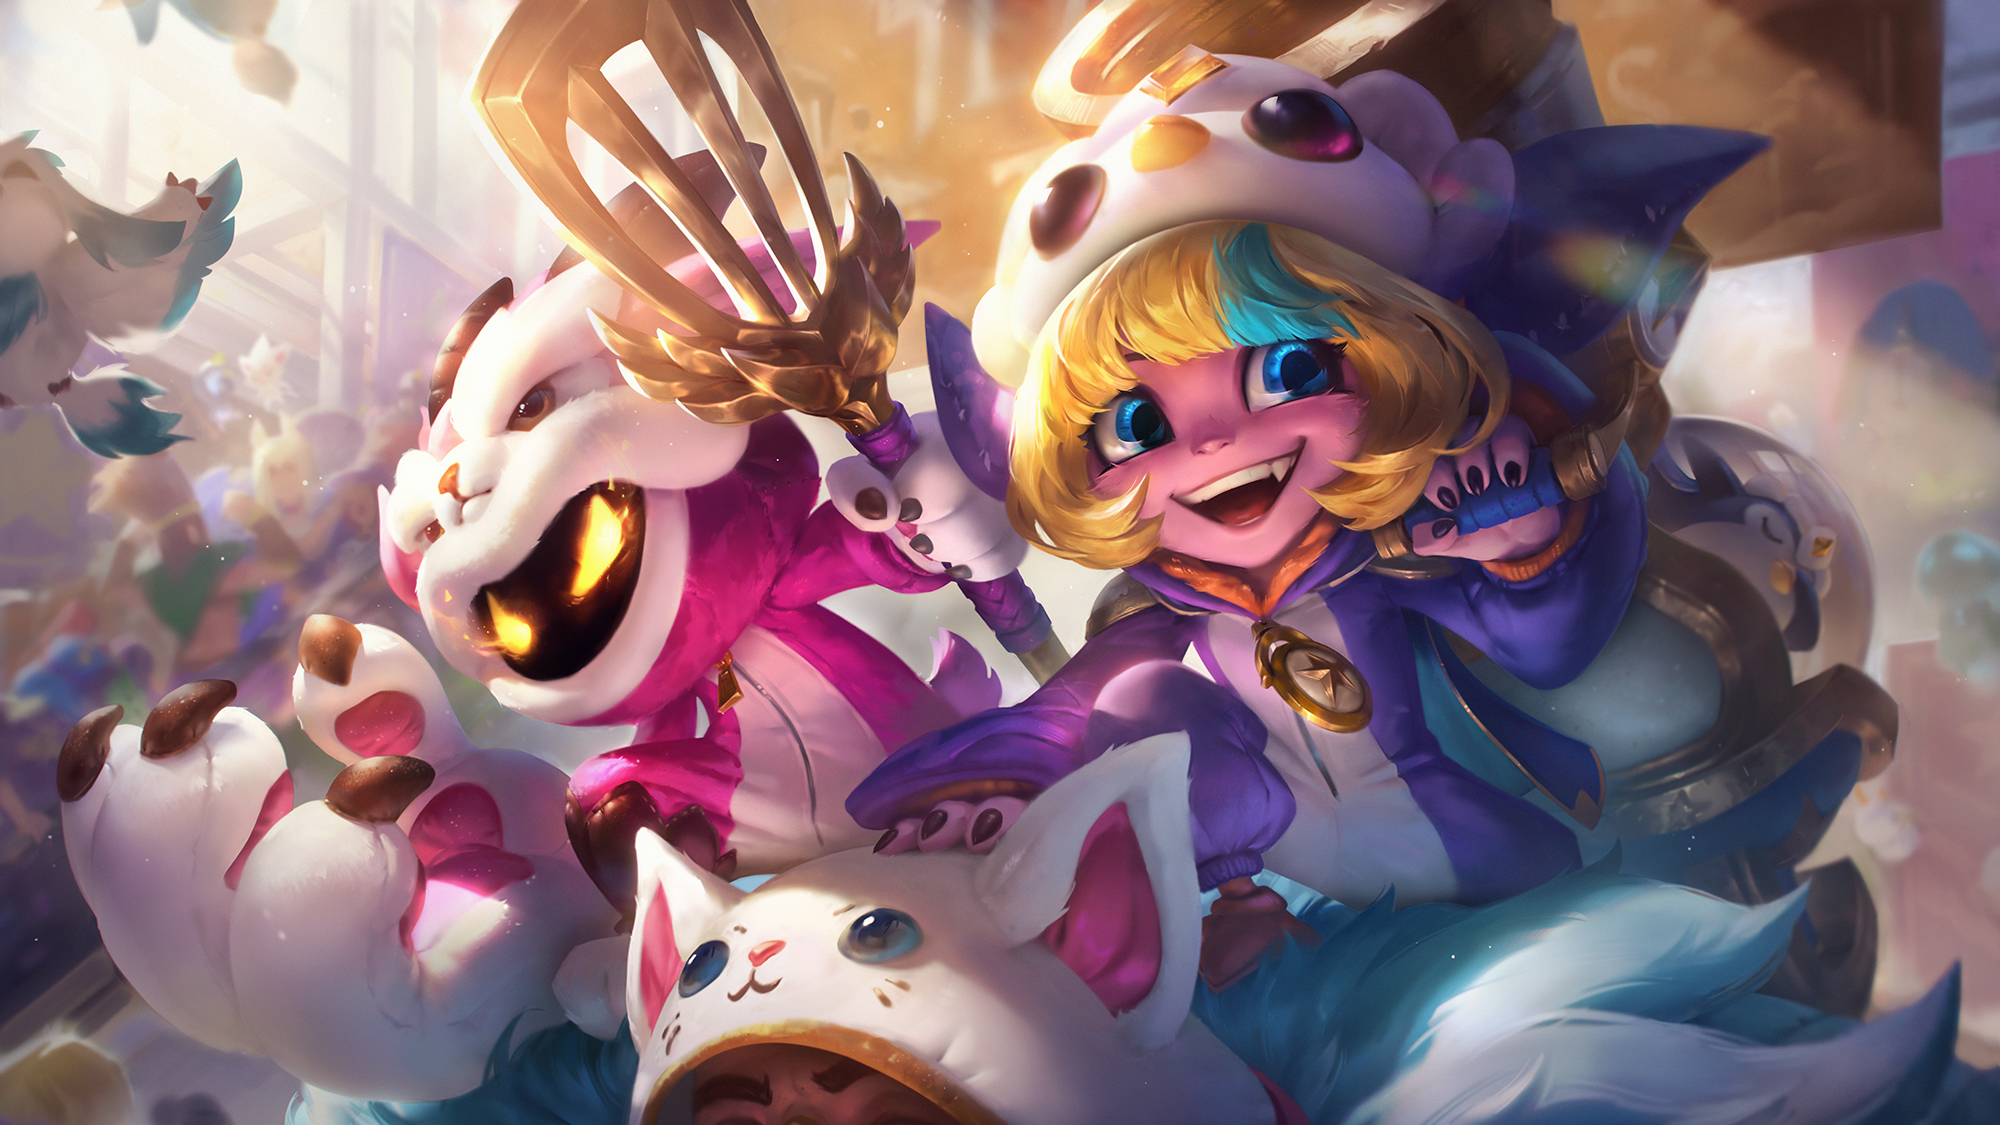 Pengu Cosplay Tristana and Furyhorn Cosplay Veigar sit atop another champion in cosplay